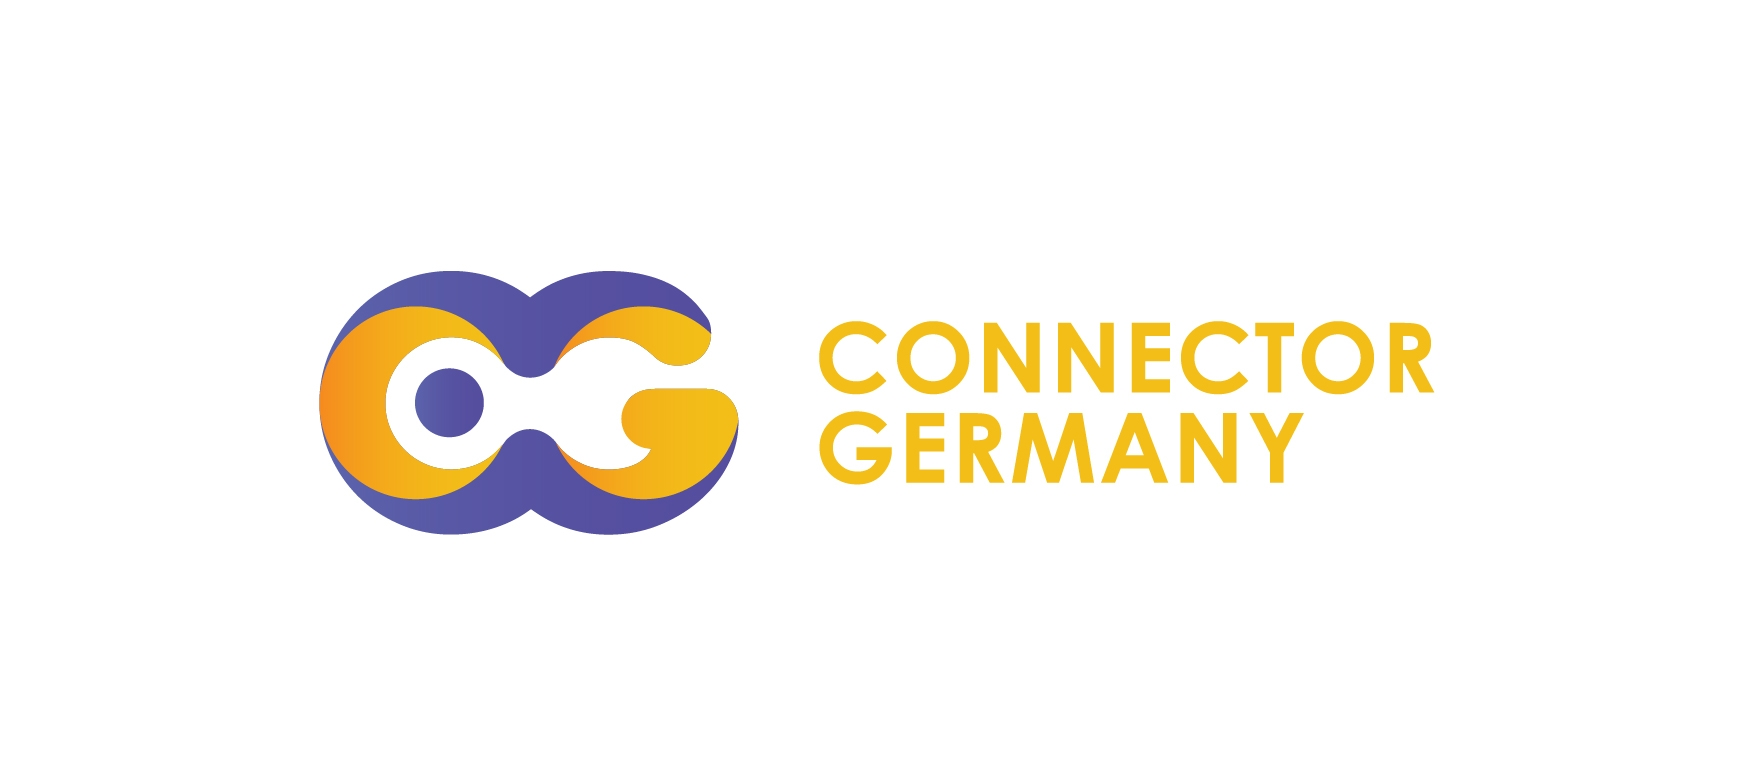 Connector Germany